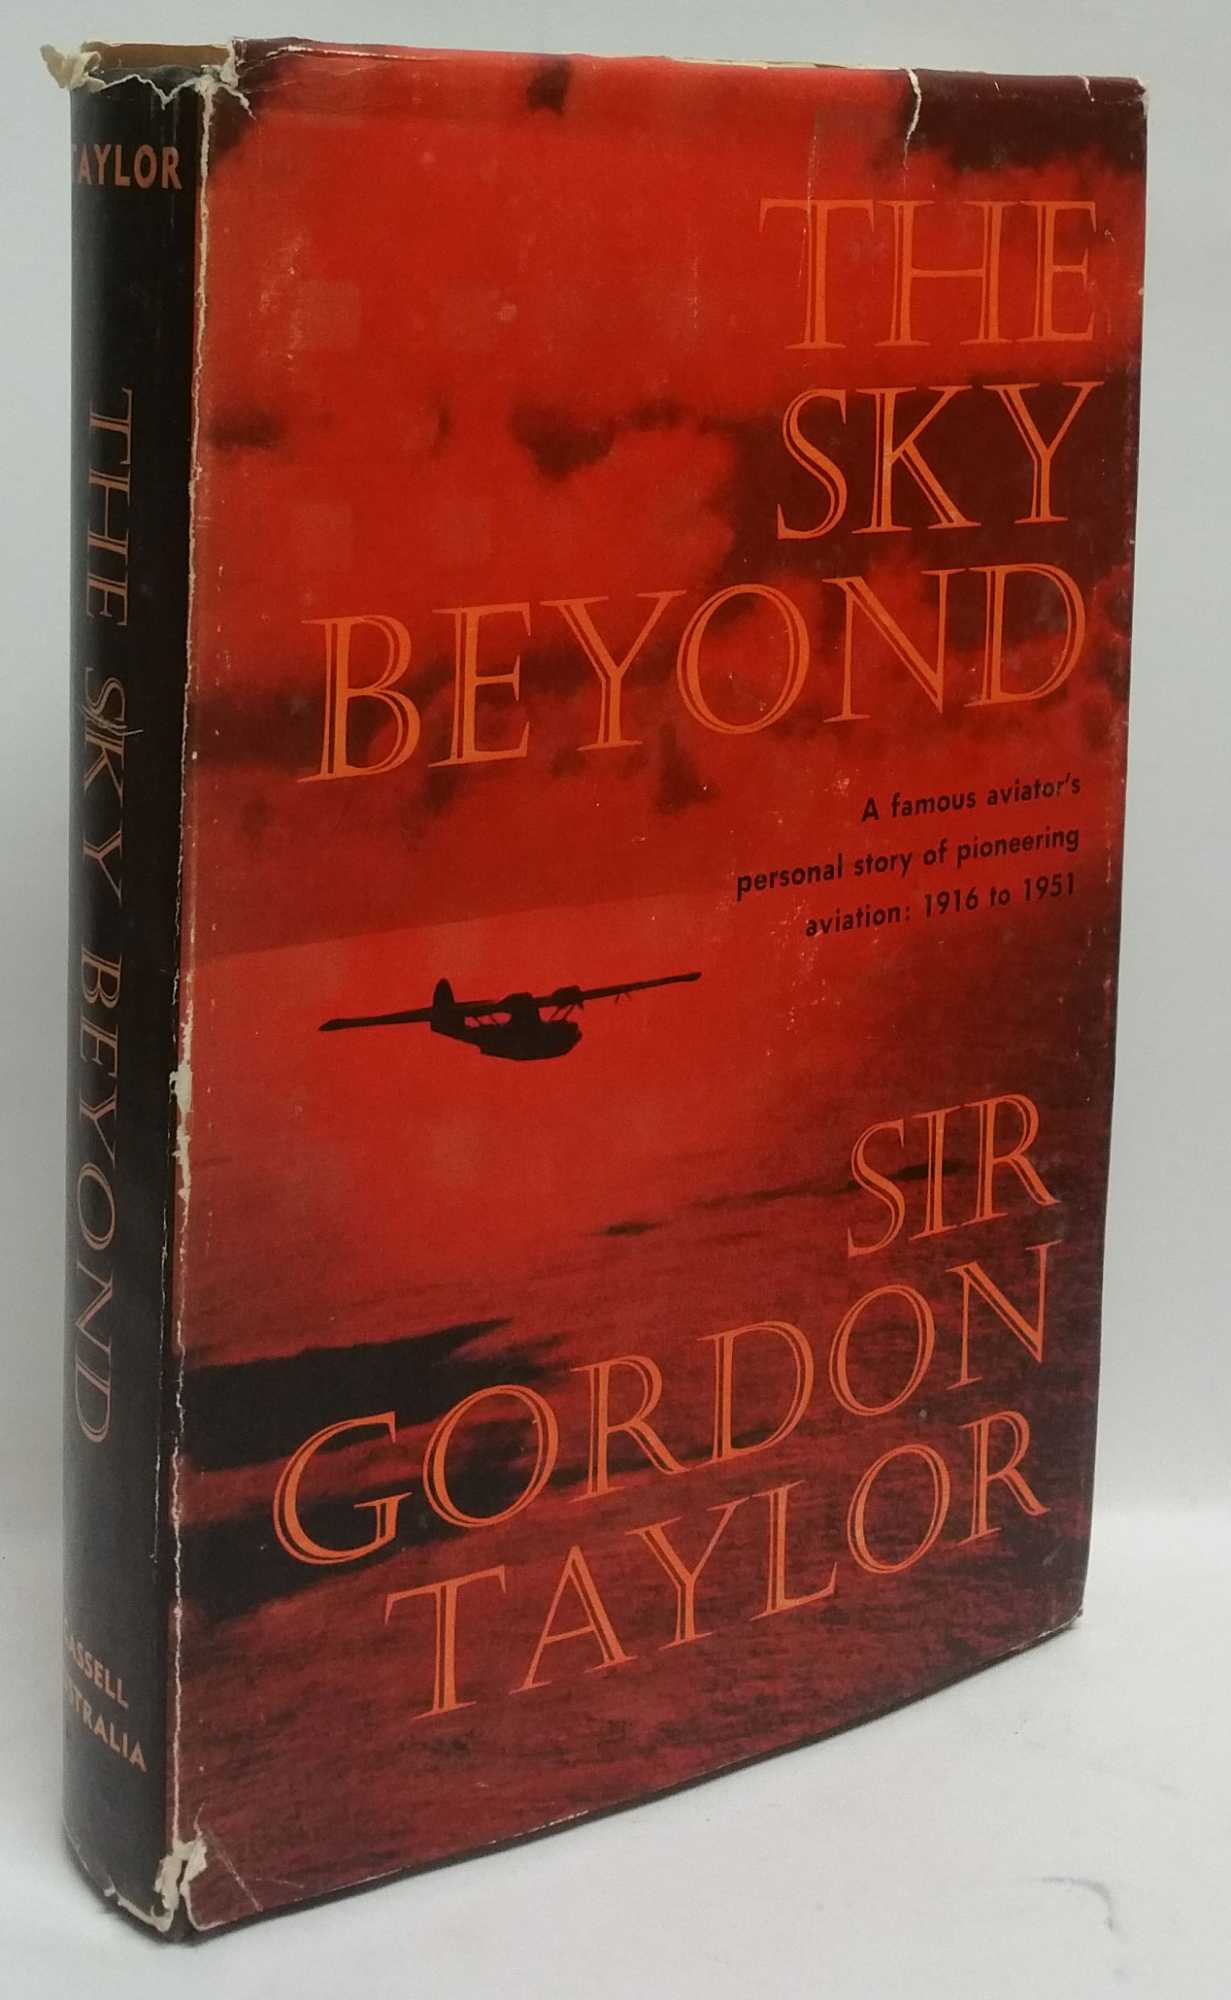 GORDON TAYLOR - The Sky Beyond: A famous aviator's personal story of pioneering aviation: 1916 to 1951